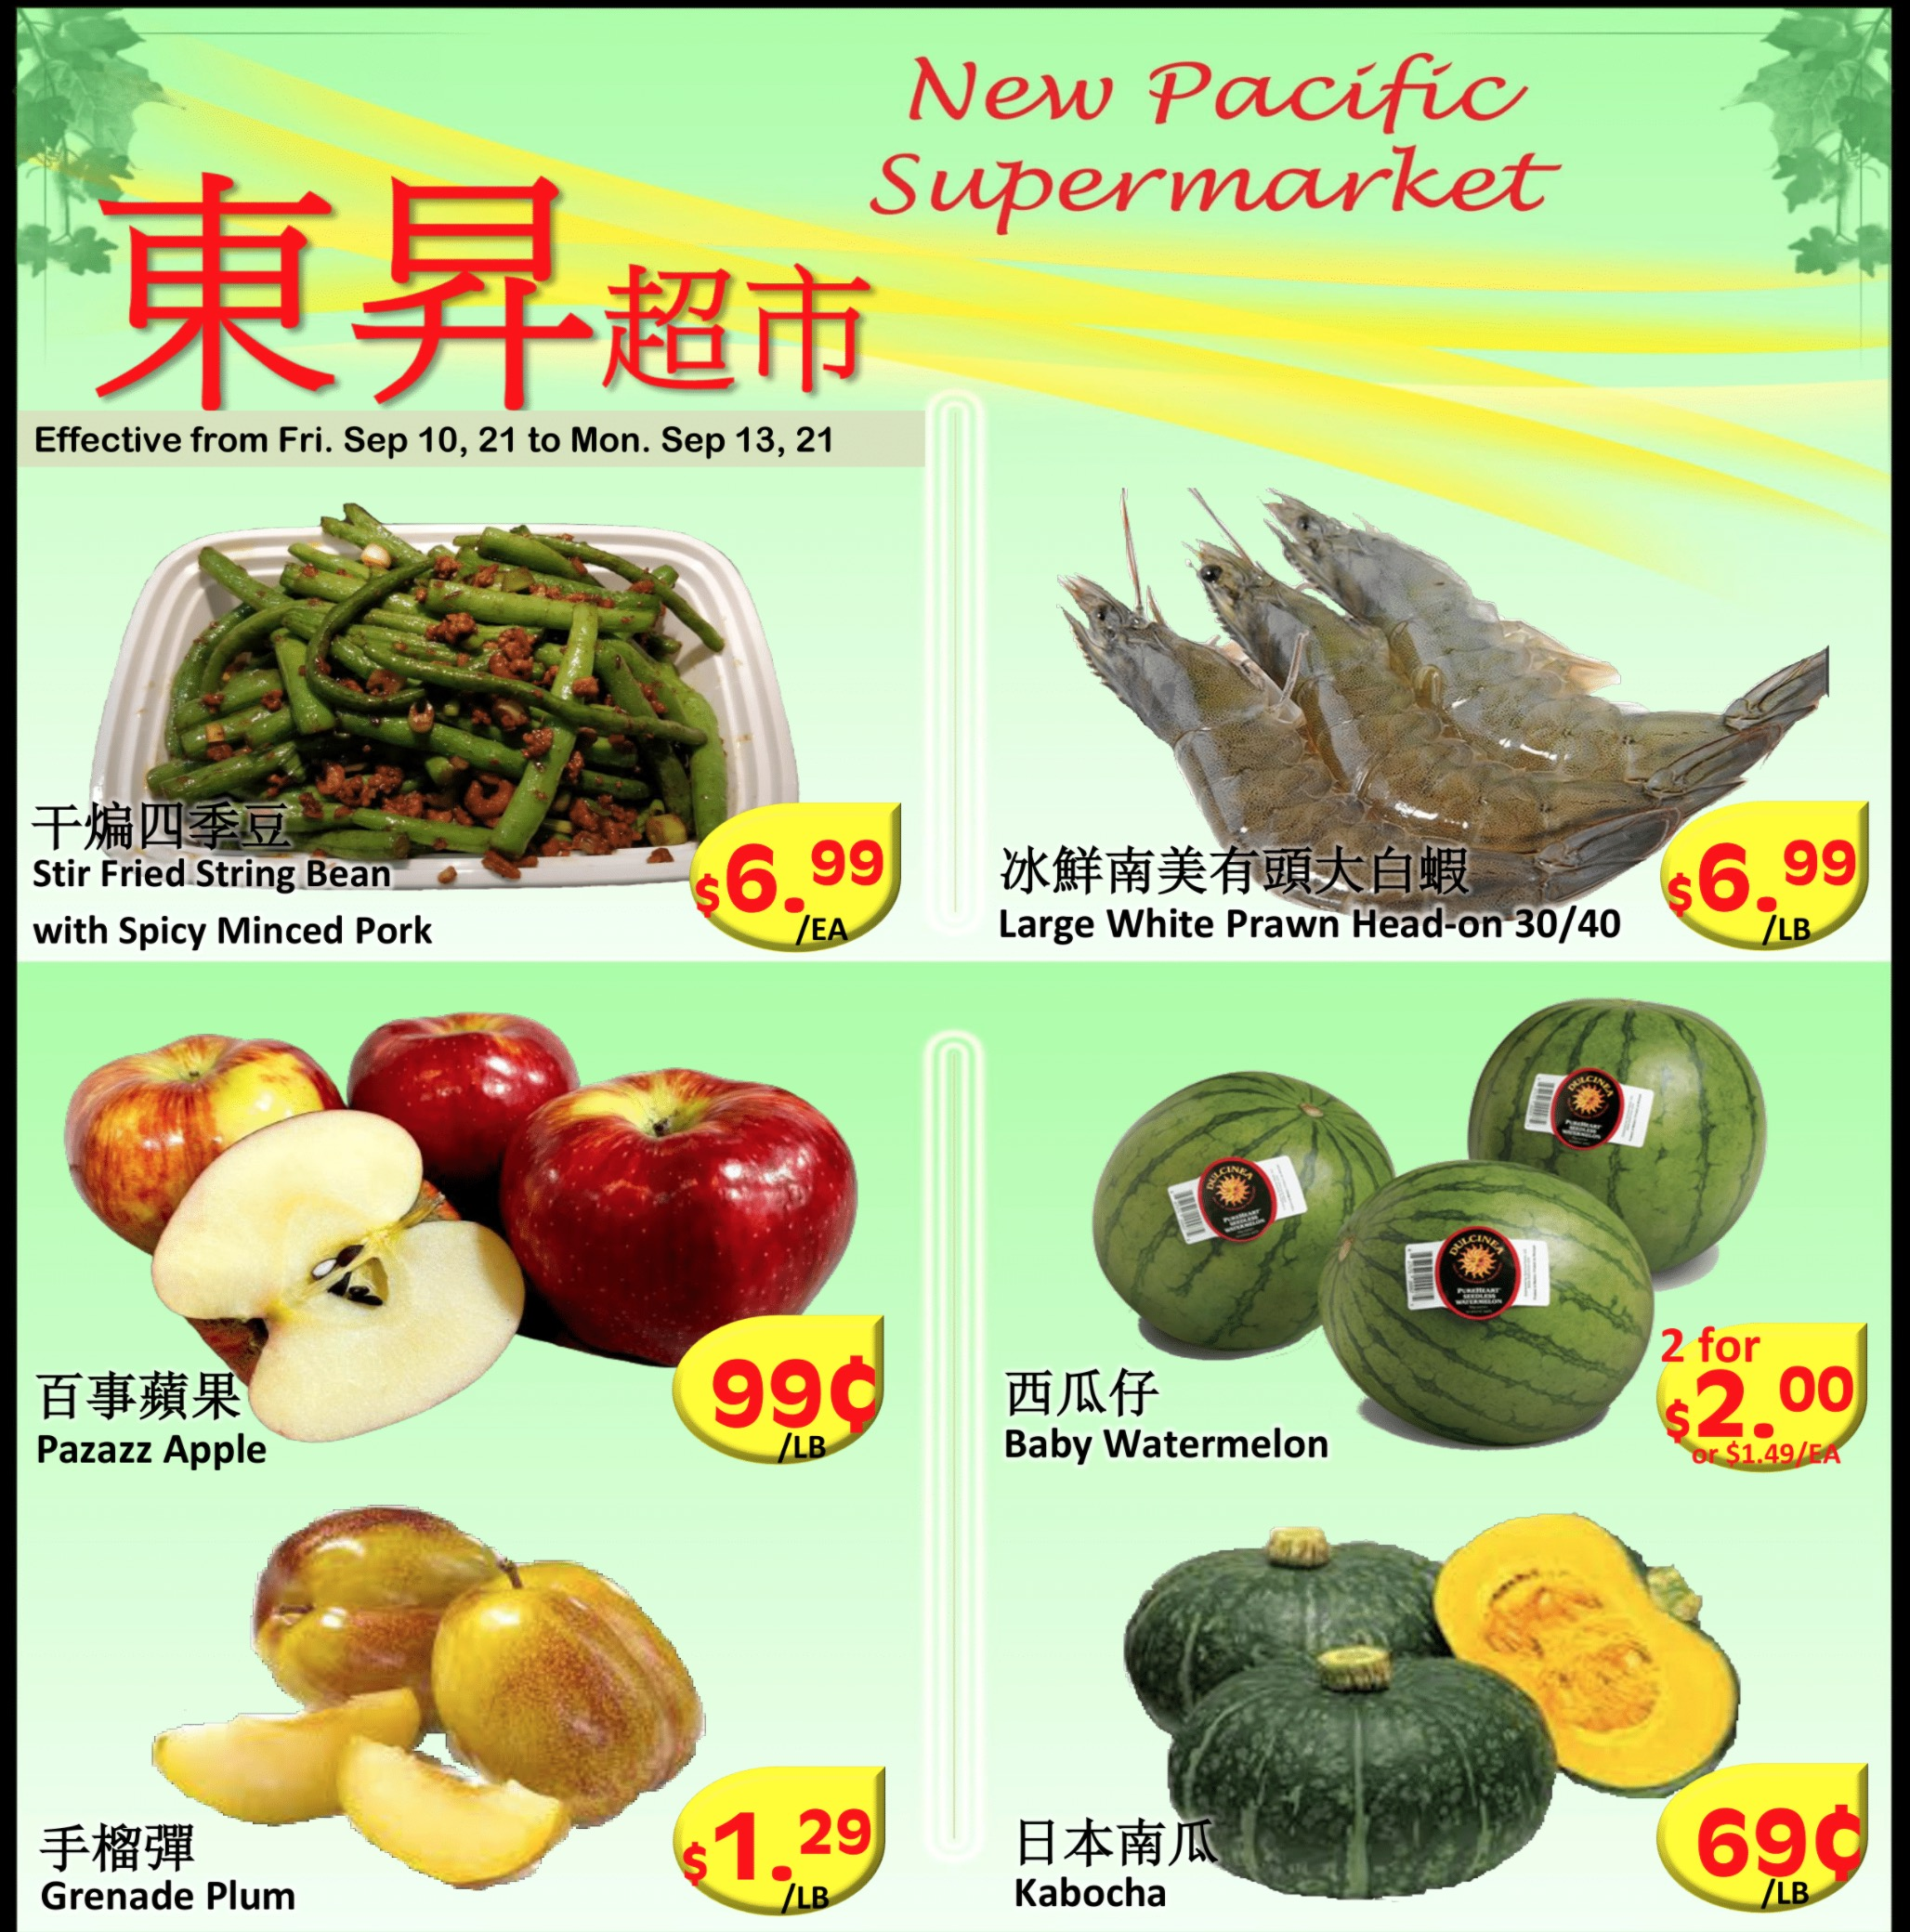 New Pacific Supermarket Flyer   Sep 10